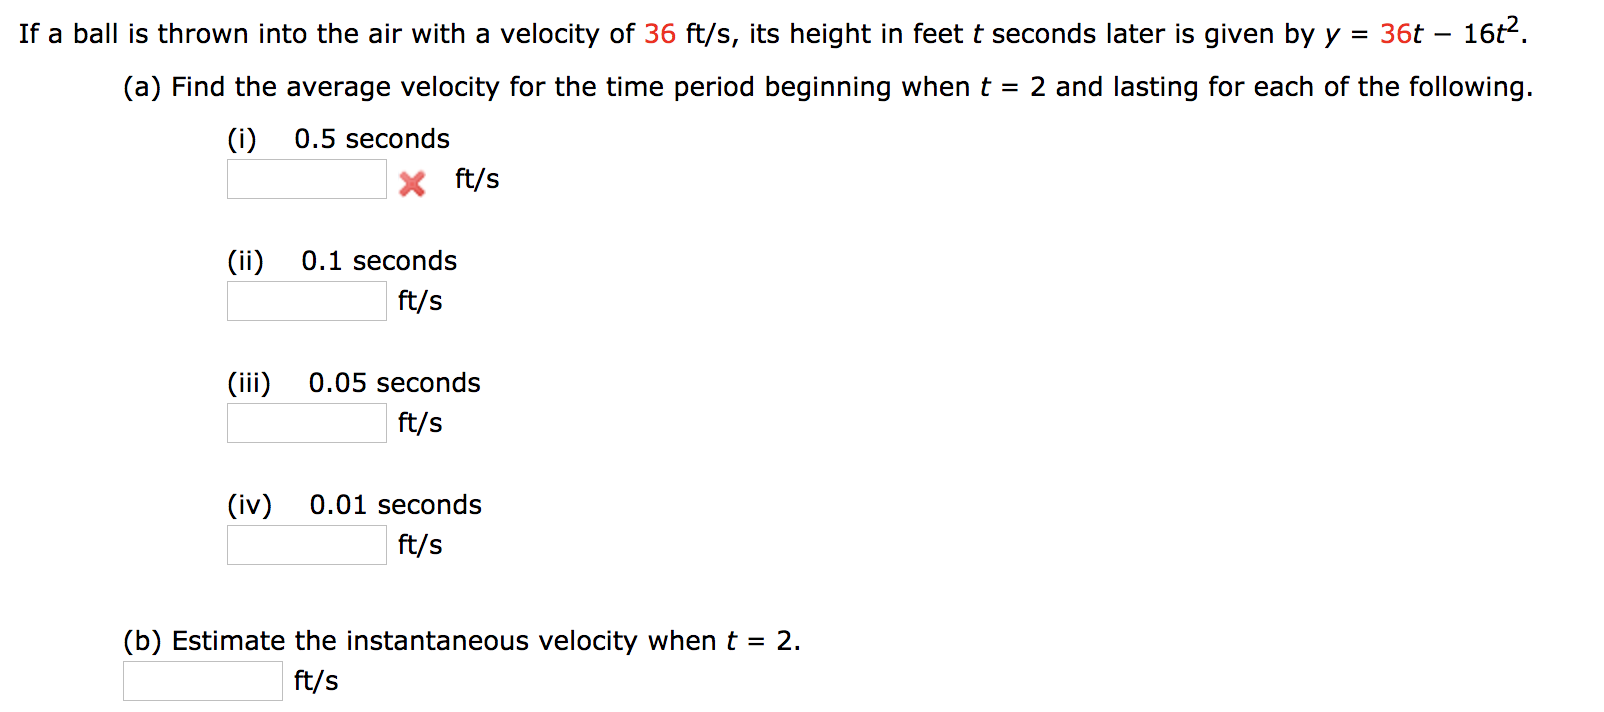 16t2. If a ball is thrown into the air with a velocity of 36 ft/s, its height in feet t seconds later is given by y 36t = (a) Find the average velocity for the time period beginning when t 2 and lasting for each of the following. (i) 0.5 seconds ft/s (ii) 0.1 seconds ft/s (iii 0.05 seconds ft/s (iv) 0.01 seconds ft/s (b) Estimate the instantaneous velocity when t 2. = ft/s